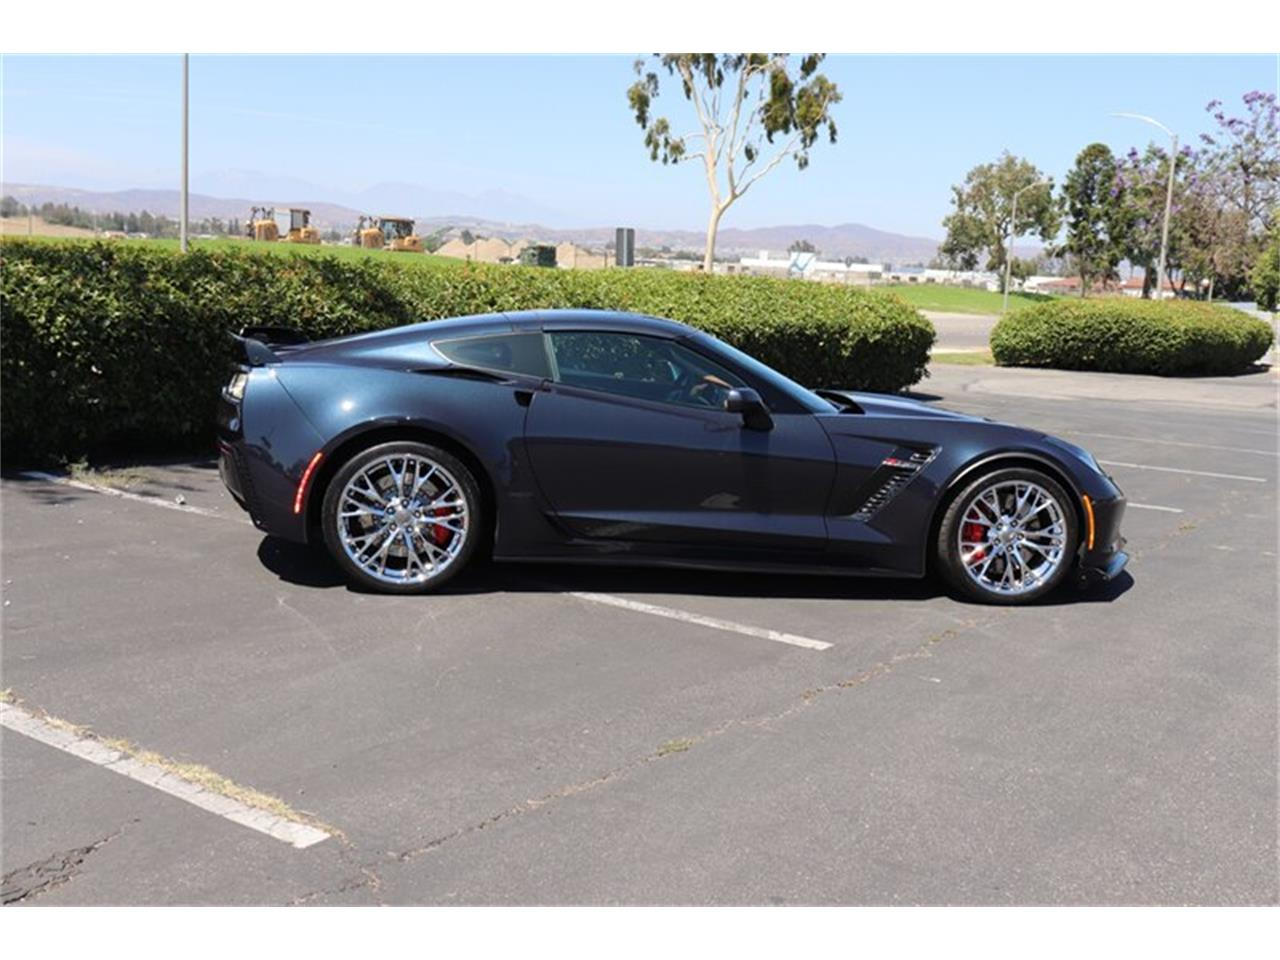 Large Picture of '15 Corvette Z06 located in California - $59,995.00 Offered by West Coast Corvettes - QFLK